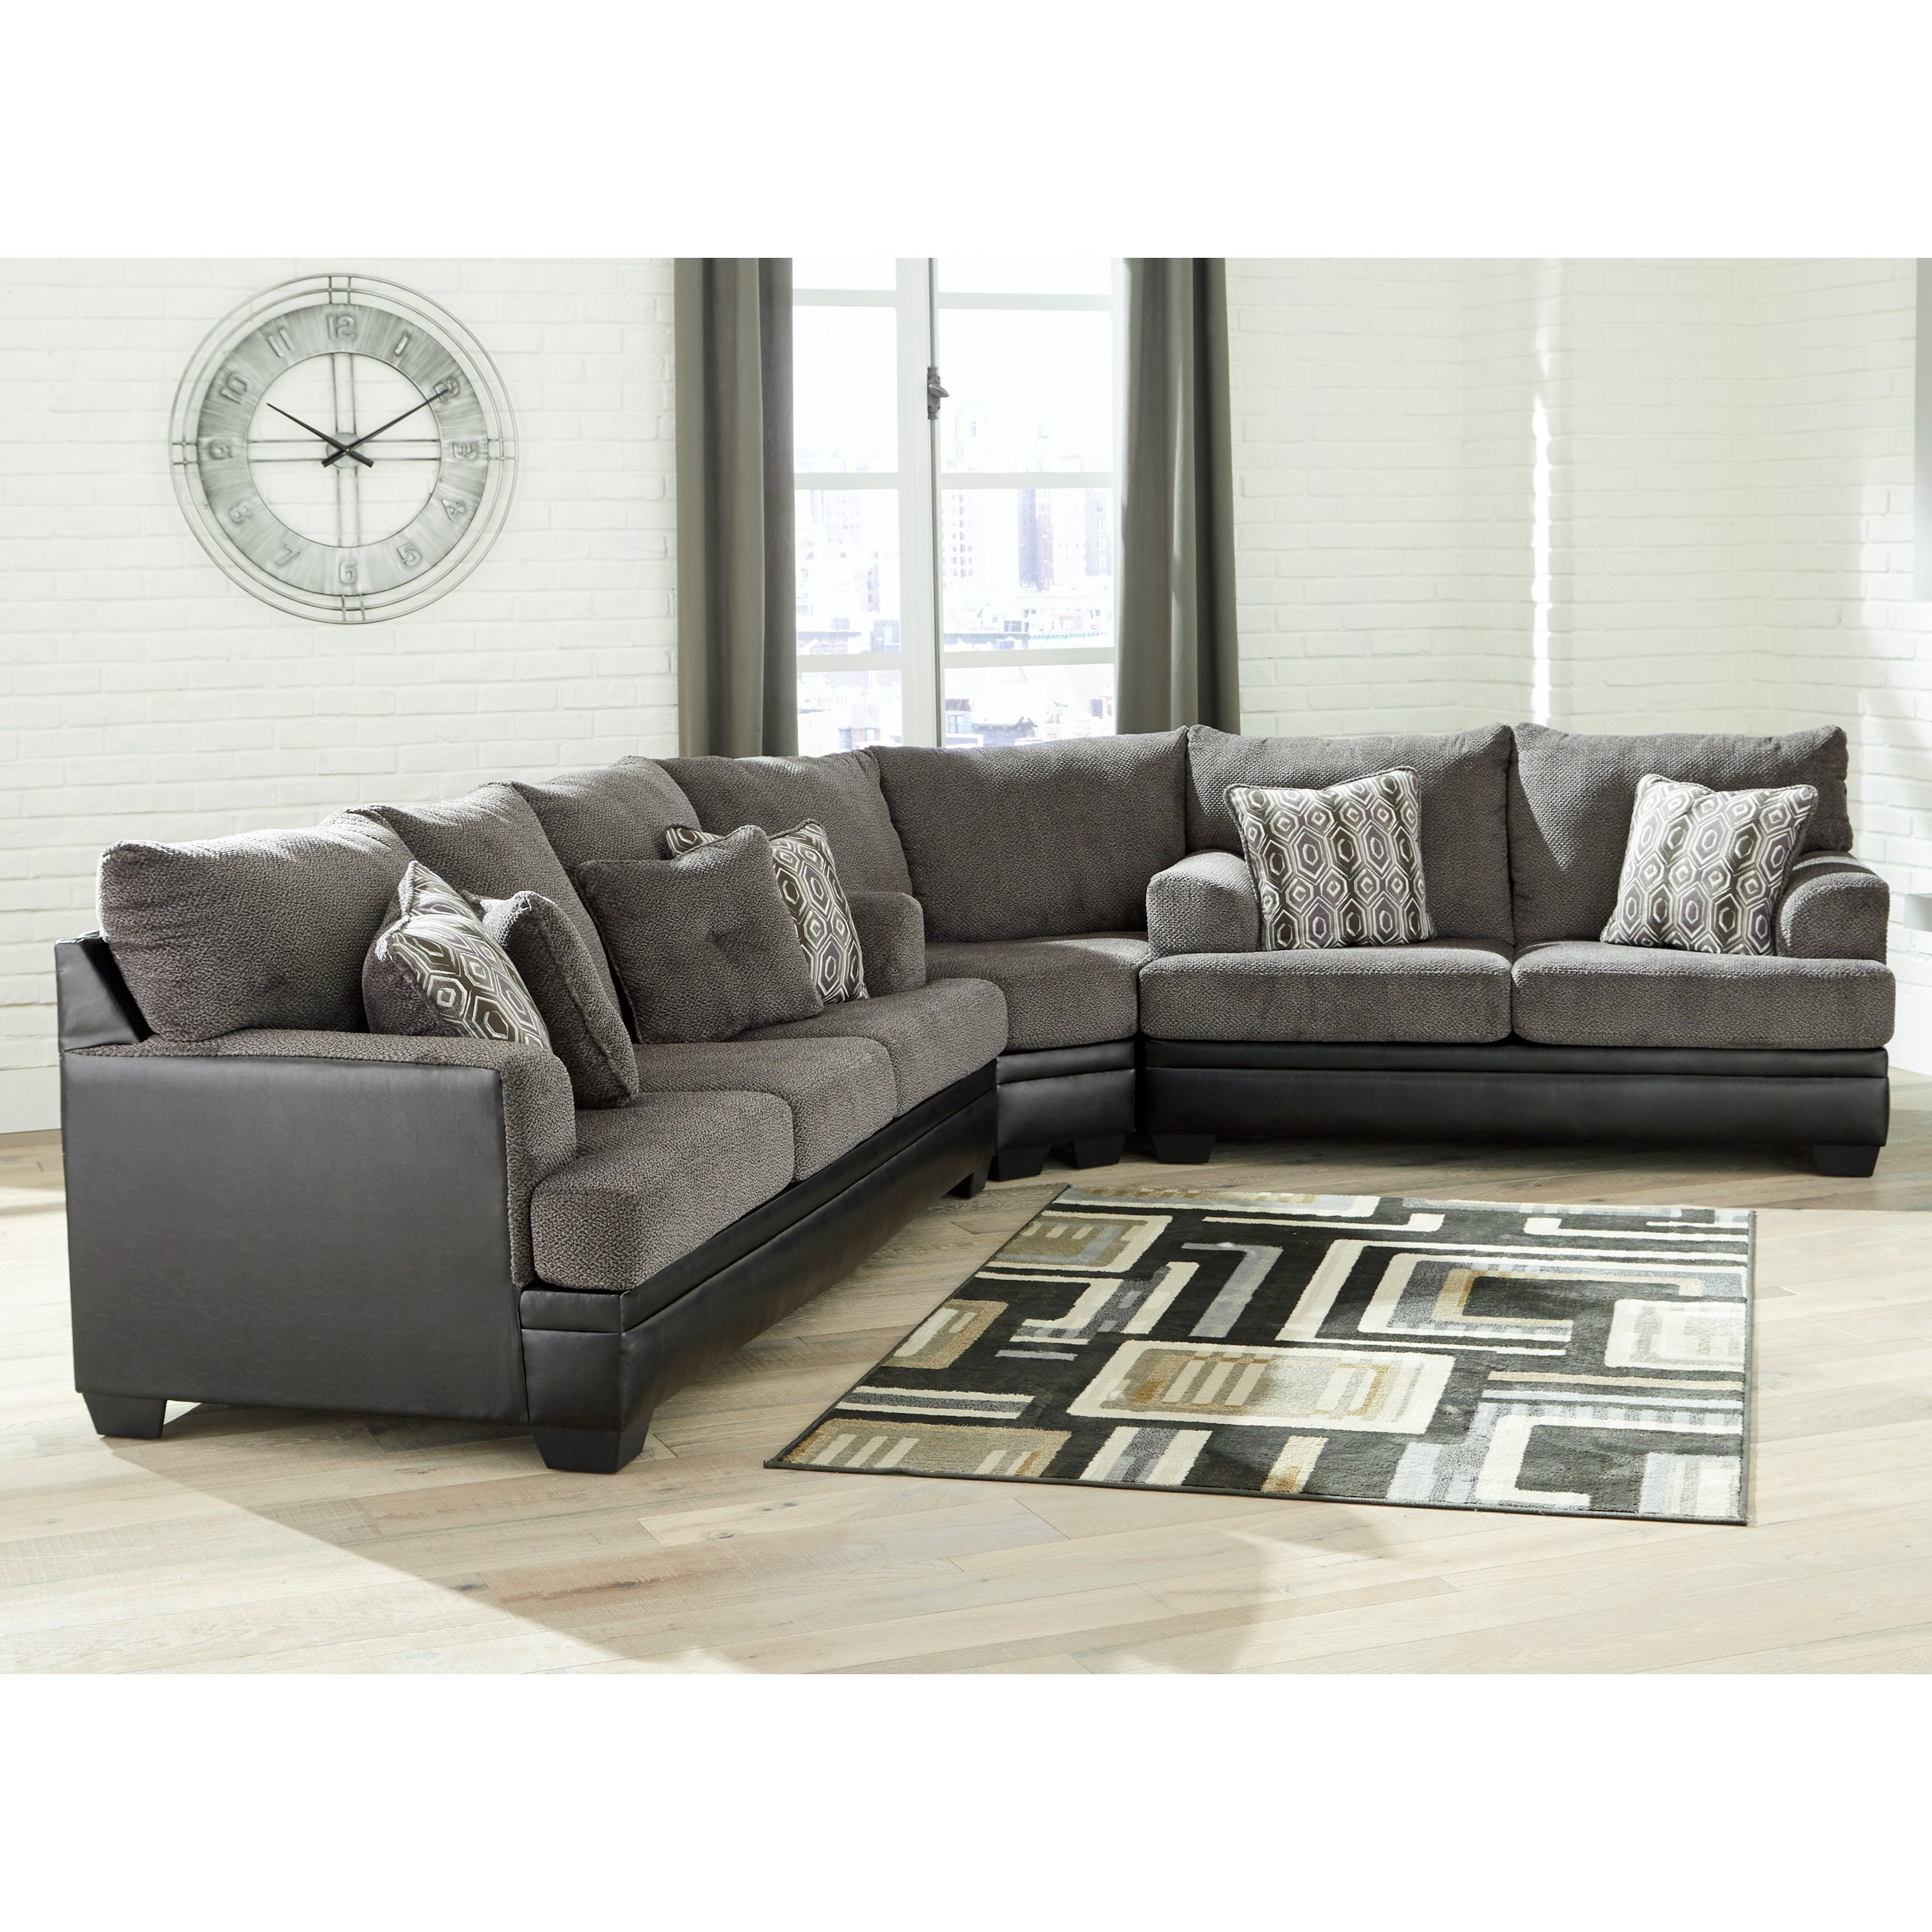 Millingar Sectional by Signature Design by Ashley at Northeast Factory Direct